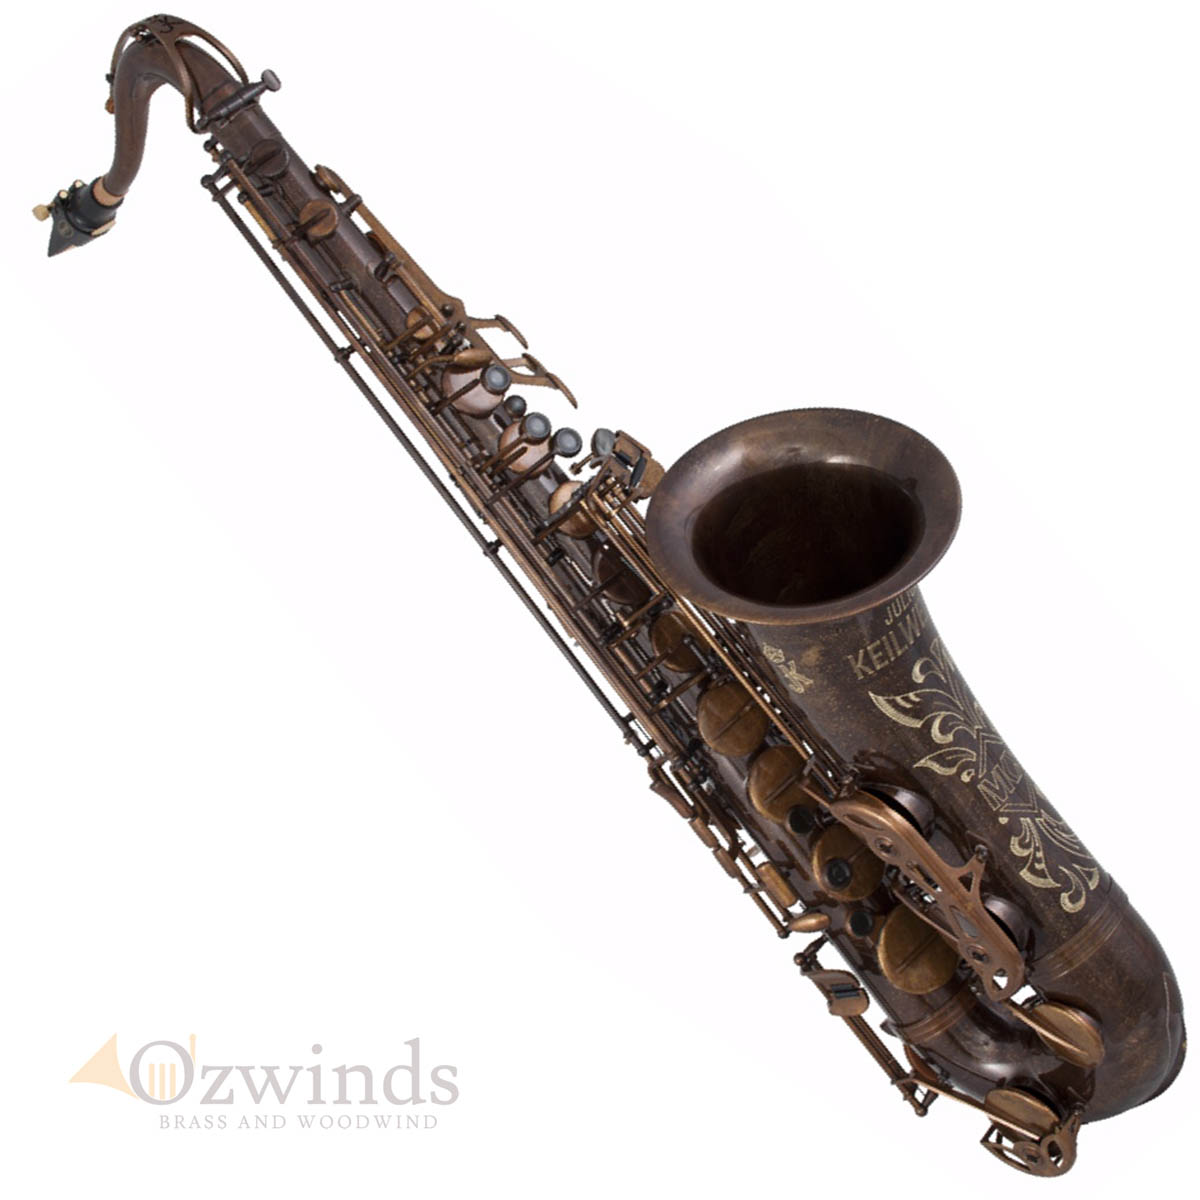 Keilwerth MKX Tenor Saxophone (Special Antique Finish)